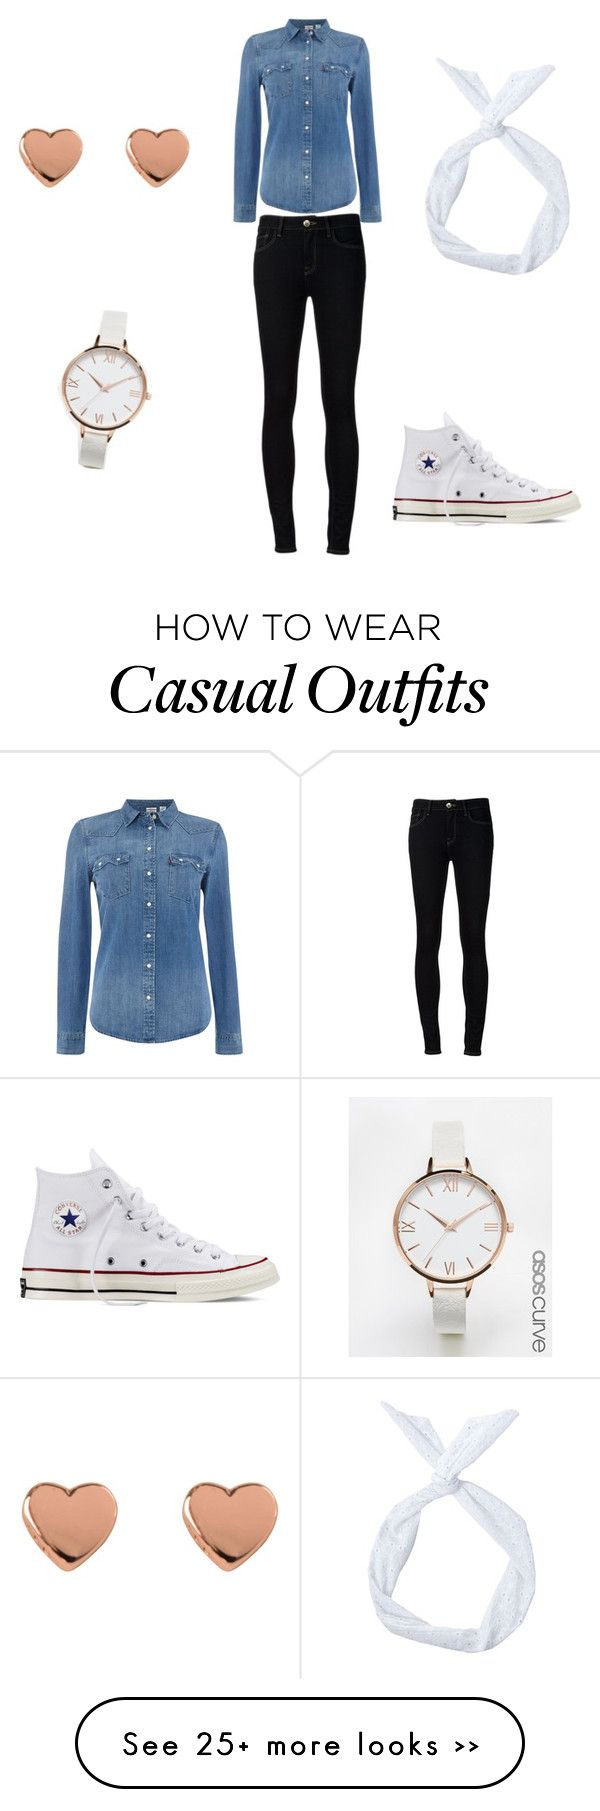 """""""Denim casual"""" by abearstyle on Polyvore featuring Levi's, Ström, ASOS Curve, Ted Baker and Converse"""